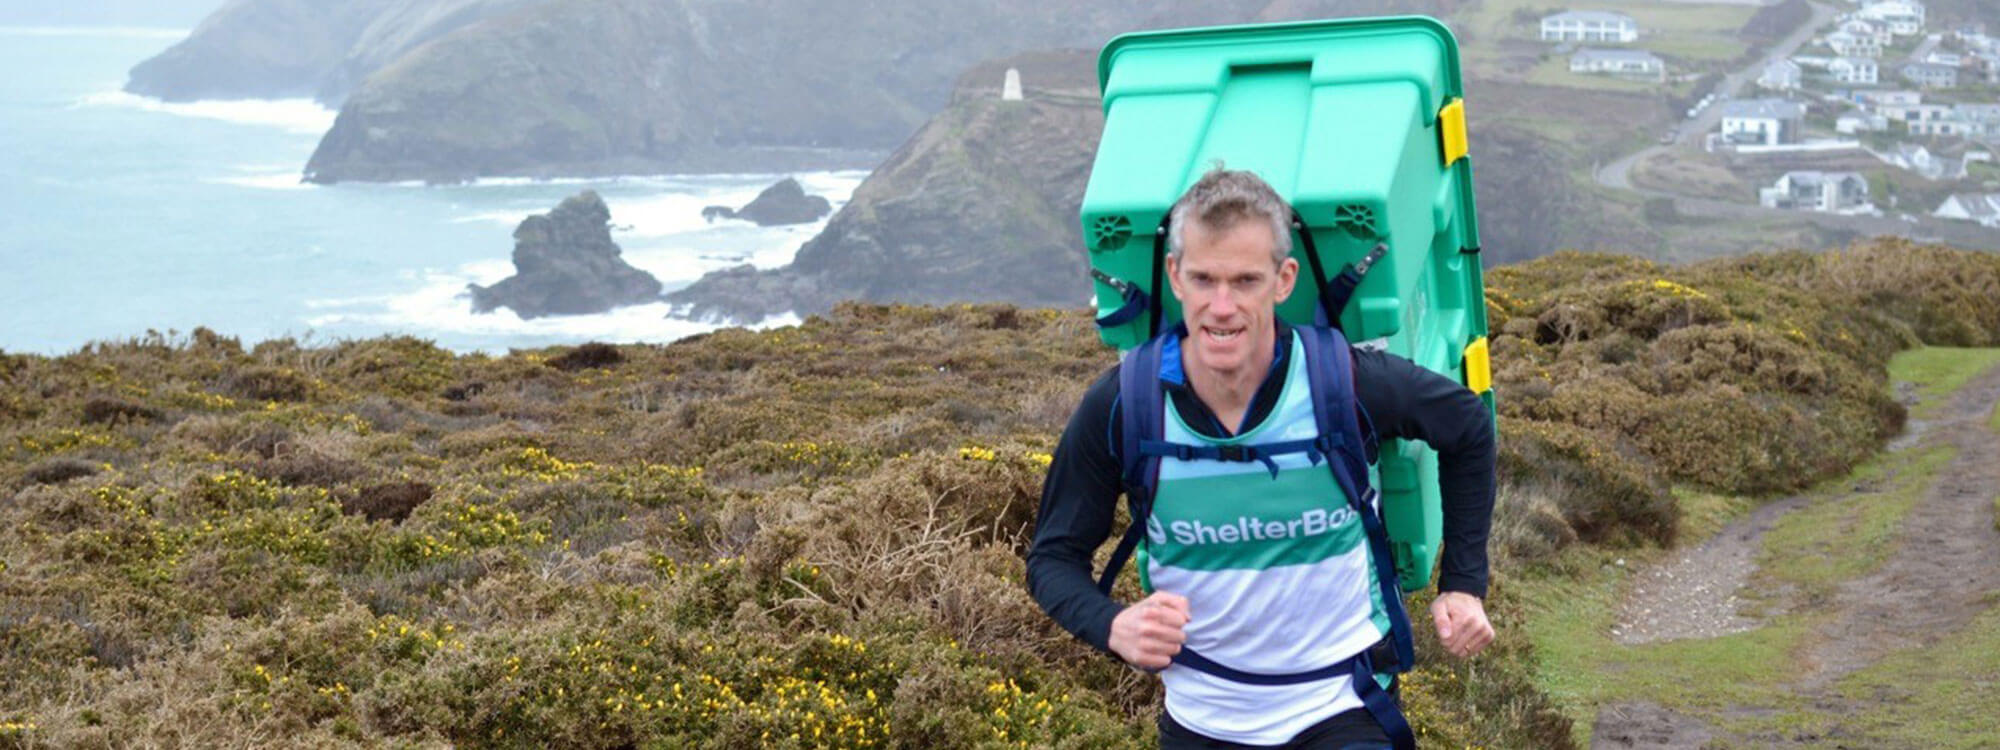 man running for shelterbox charity event